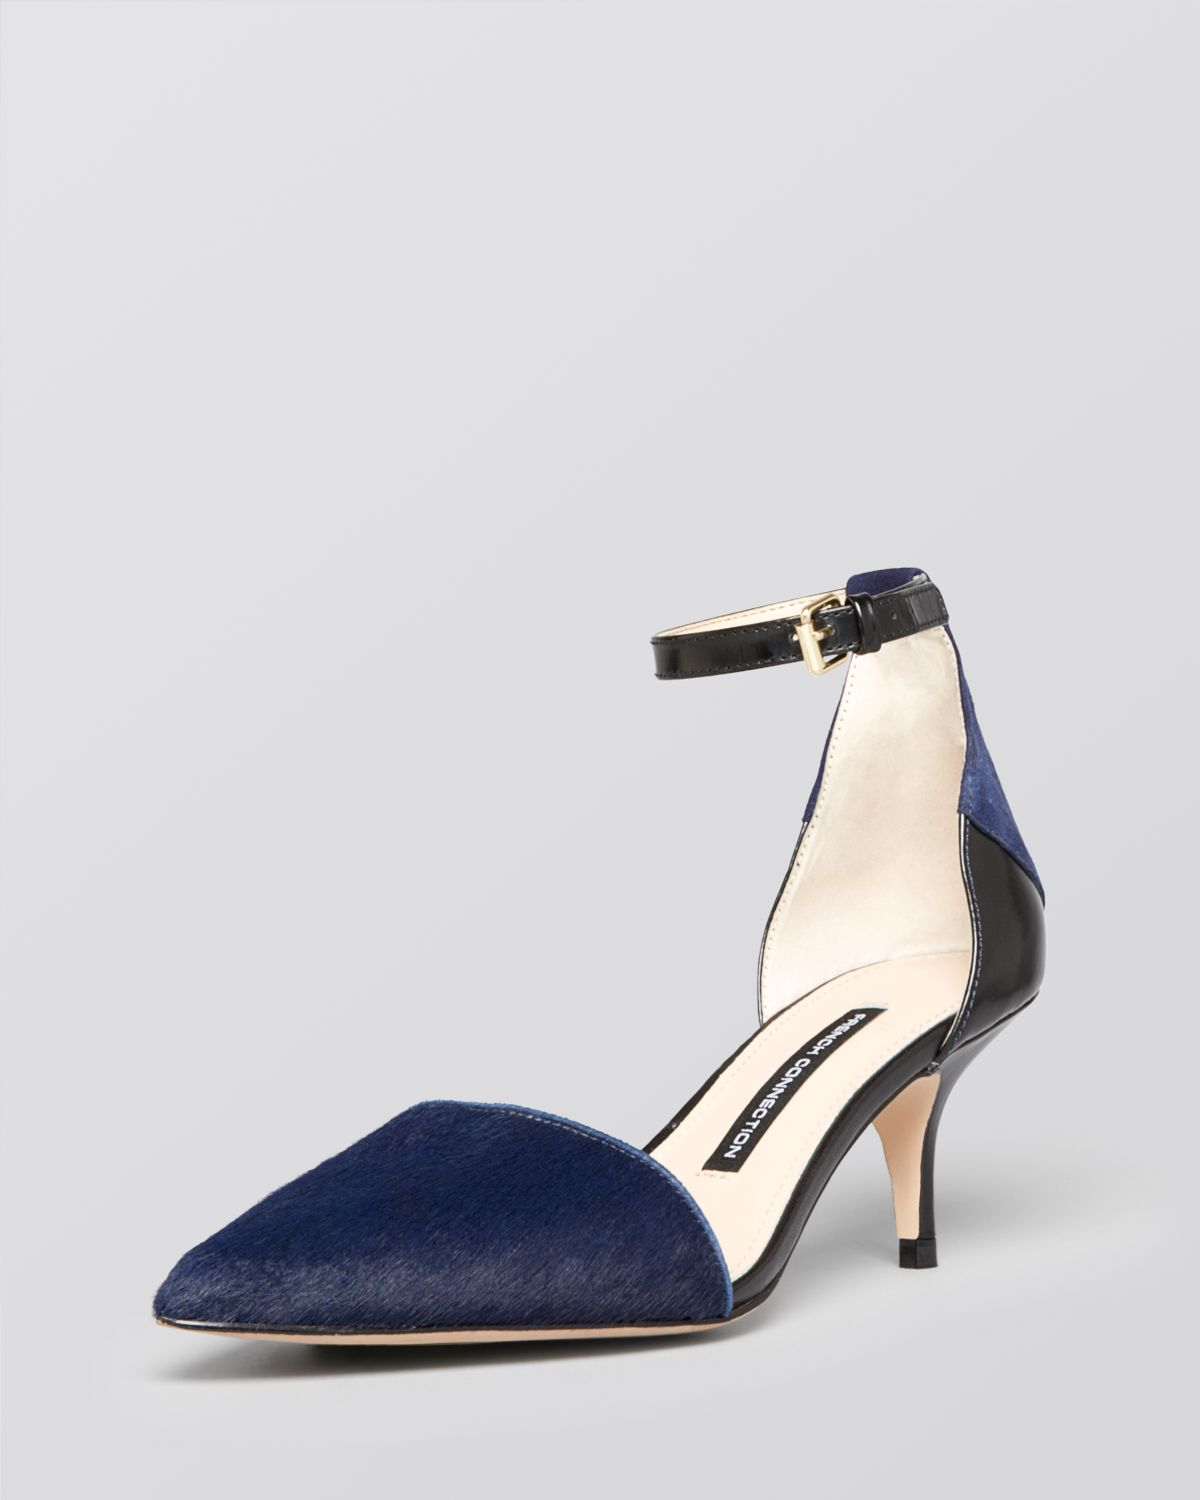 Navy Kitten Heel Pumps | Fs Heel